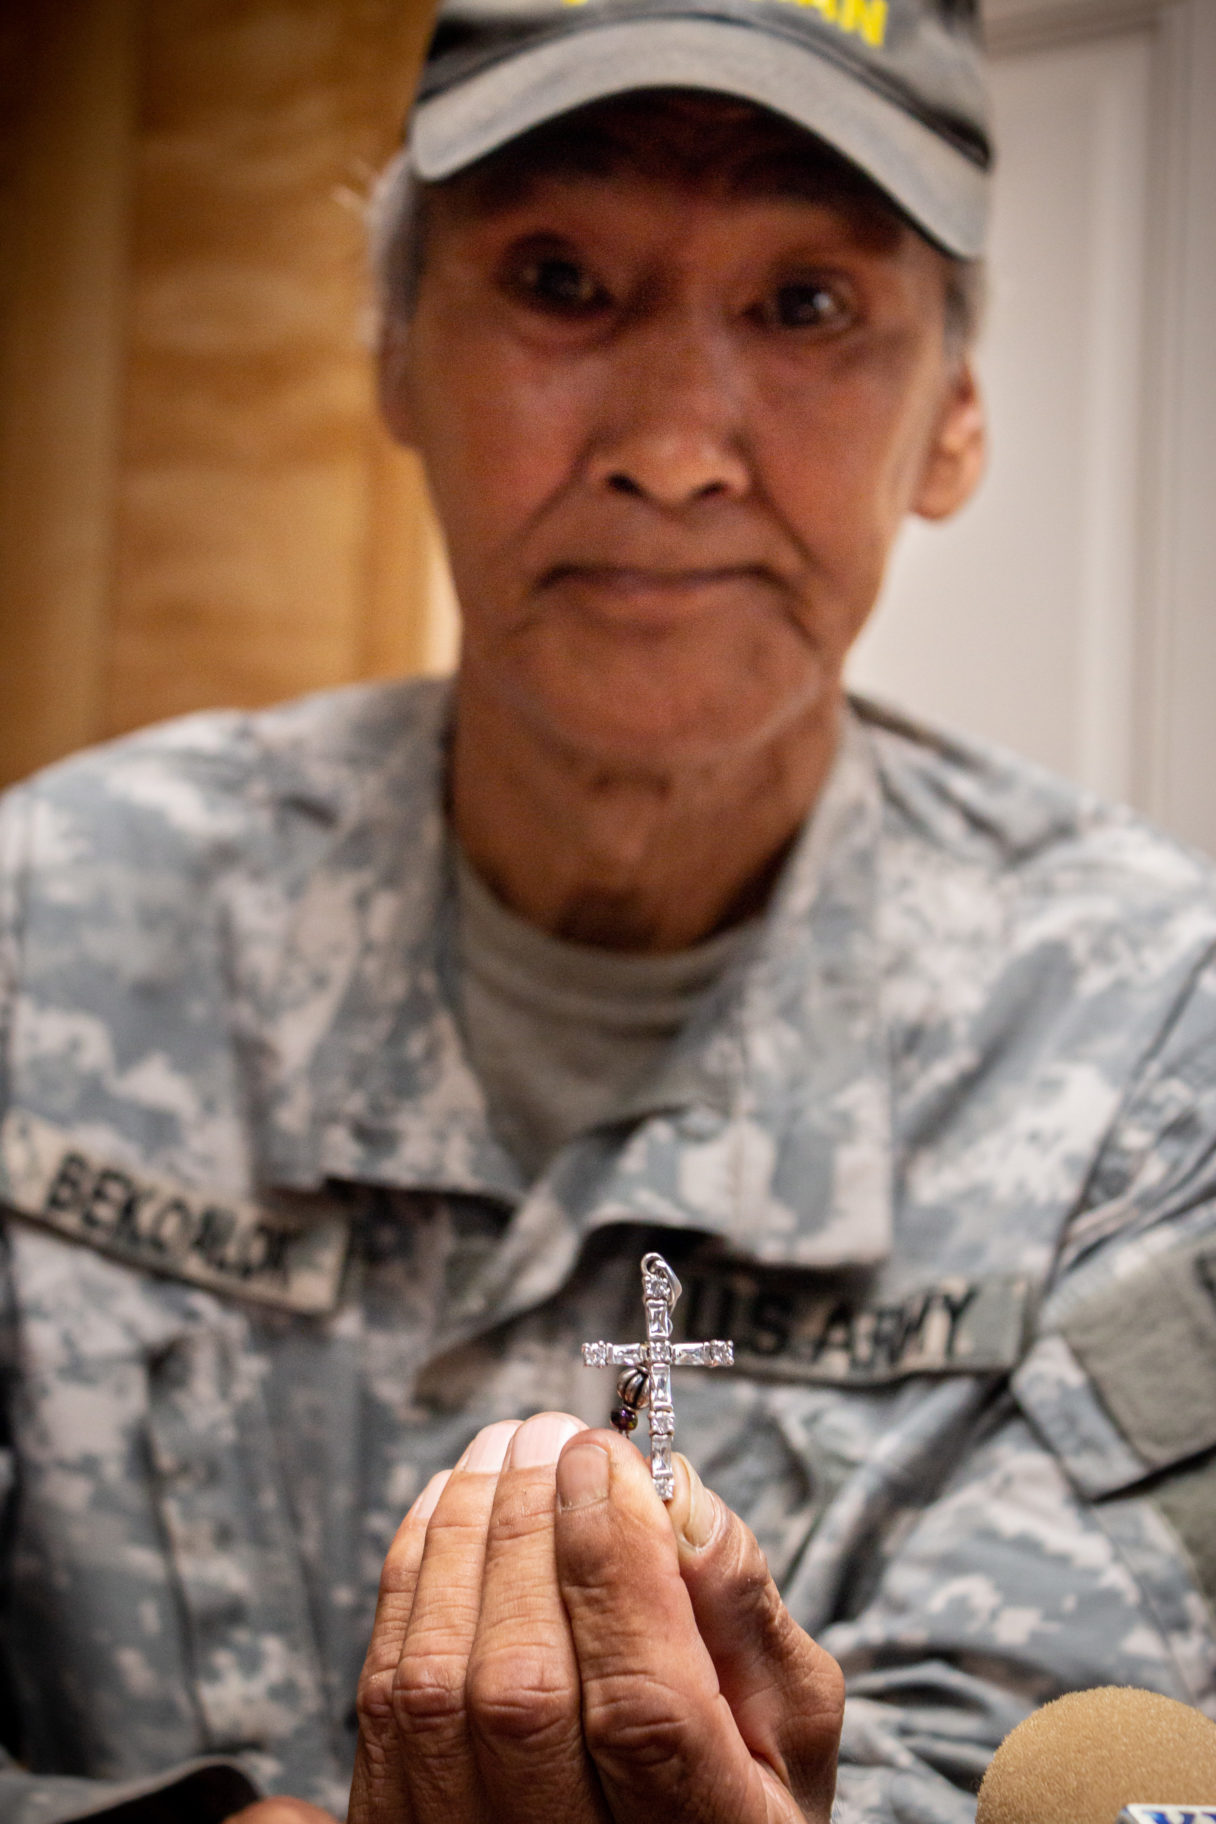 Man in Army uniform holds small silver cross